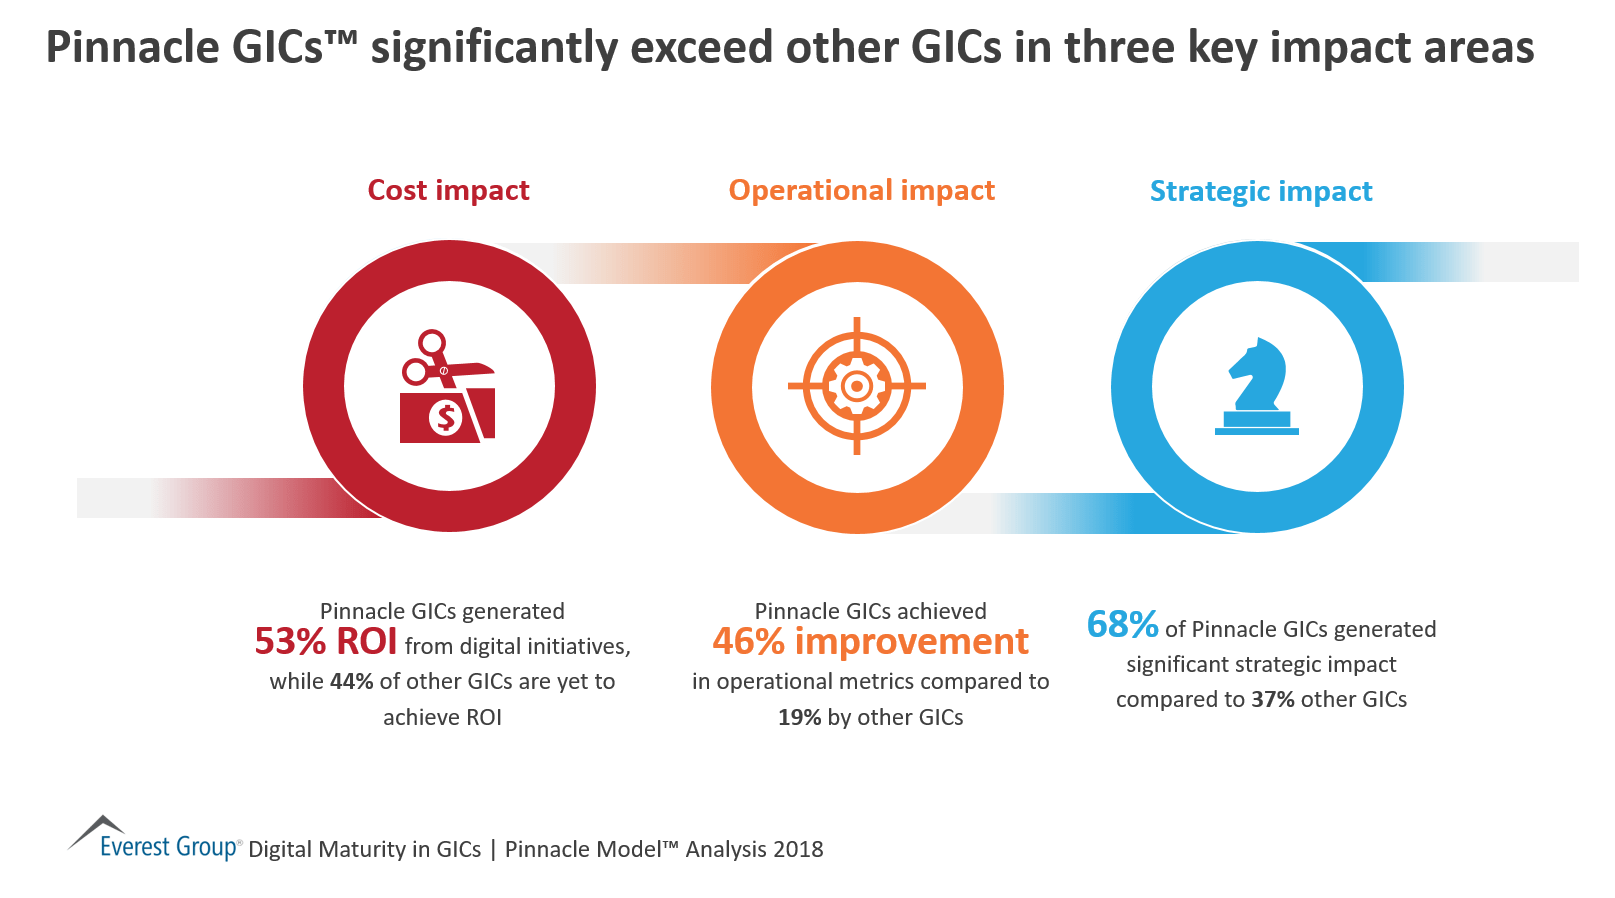 Pinnacle GICs™ significantly exceed other GICs in three key impact areas